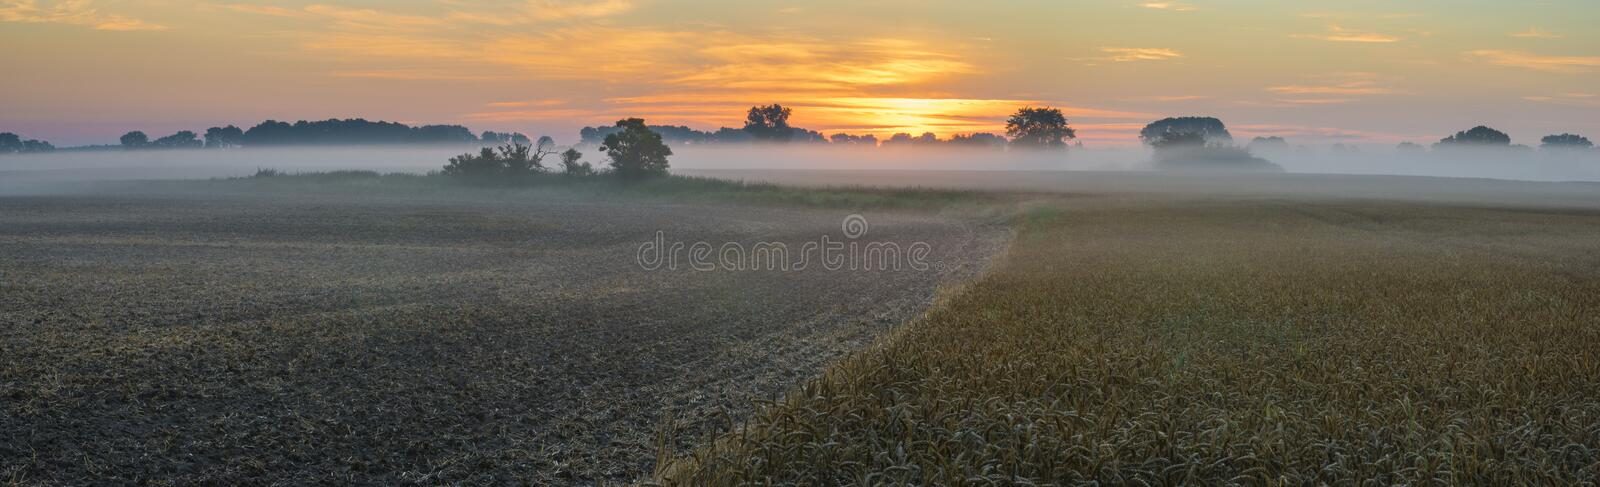 Misty morning over the field of ripe wheat.Late summer on the fields in germany in the morning. Beautiful, colorful sunrise ,Late summer on the fields in germany stock photo